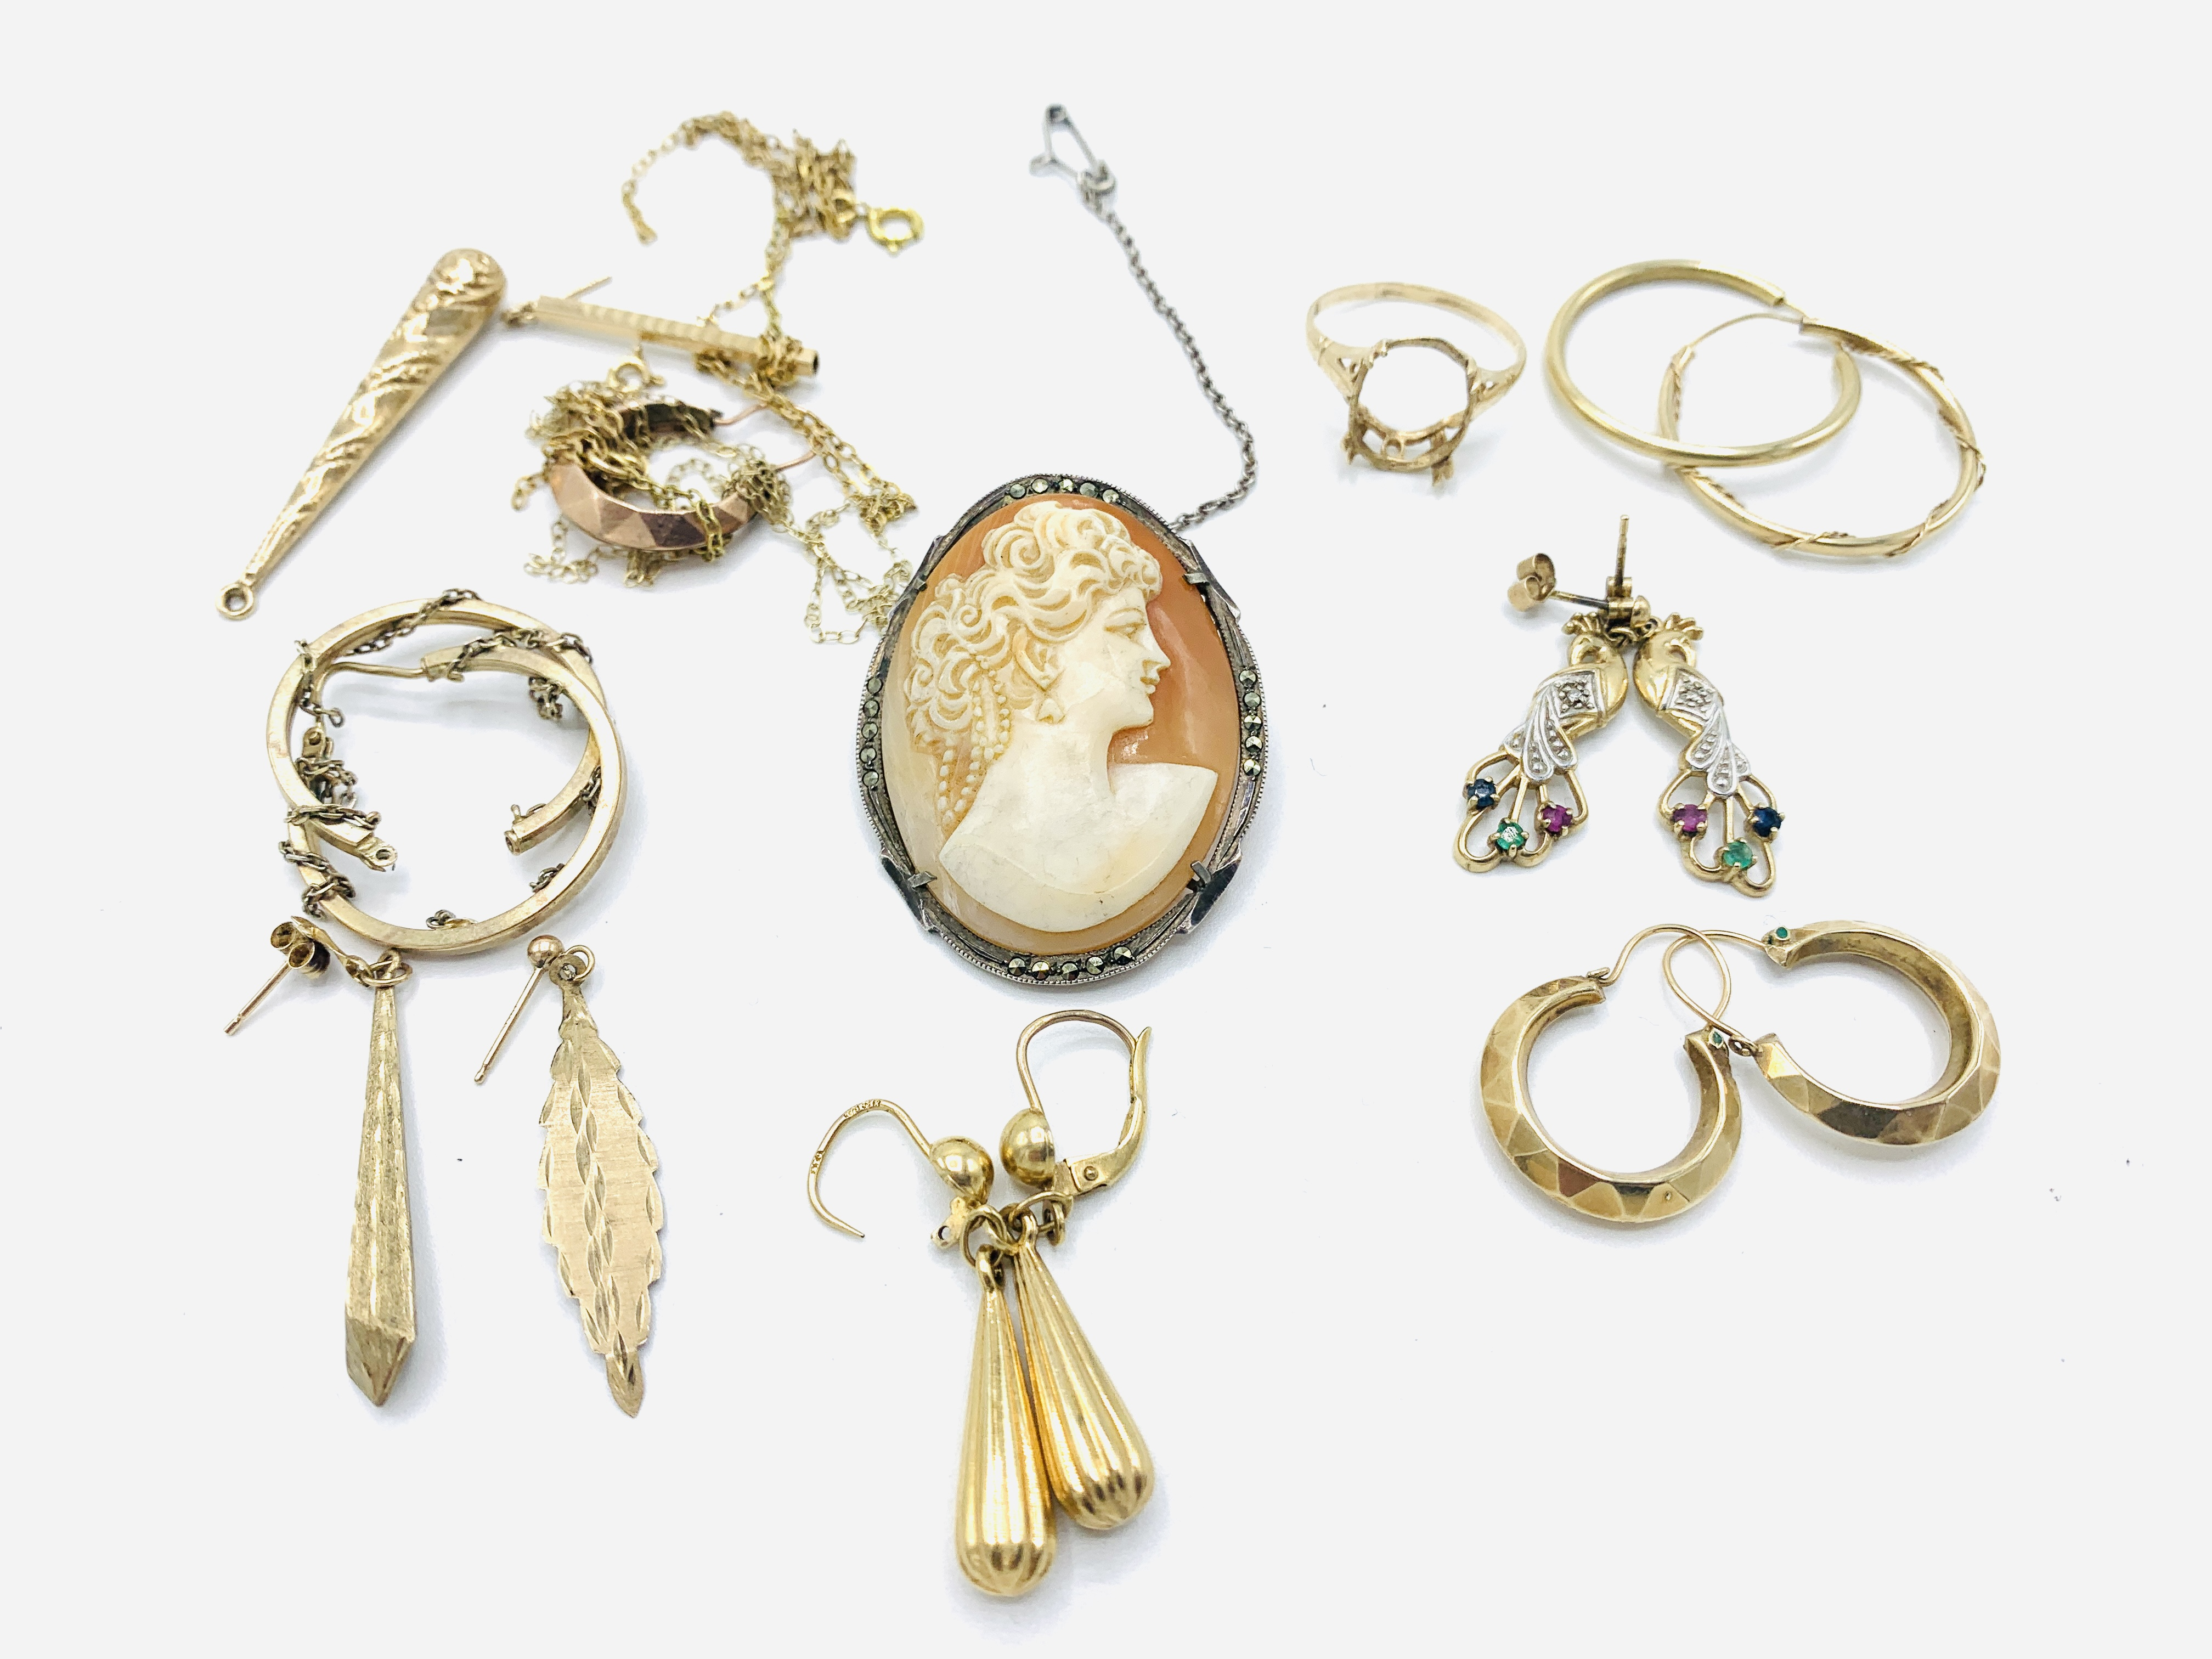 Six pairs of 9ct gold earrings; together with other jewellery